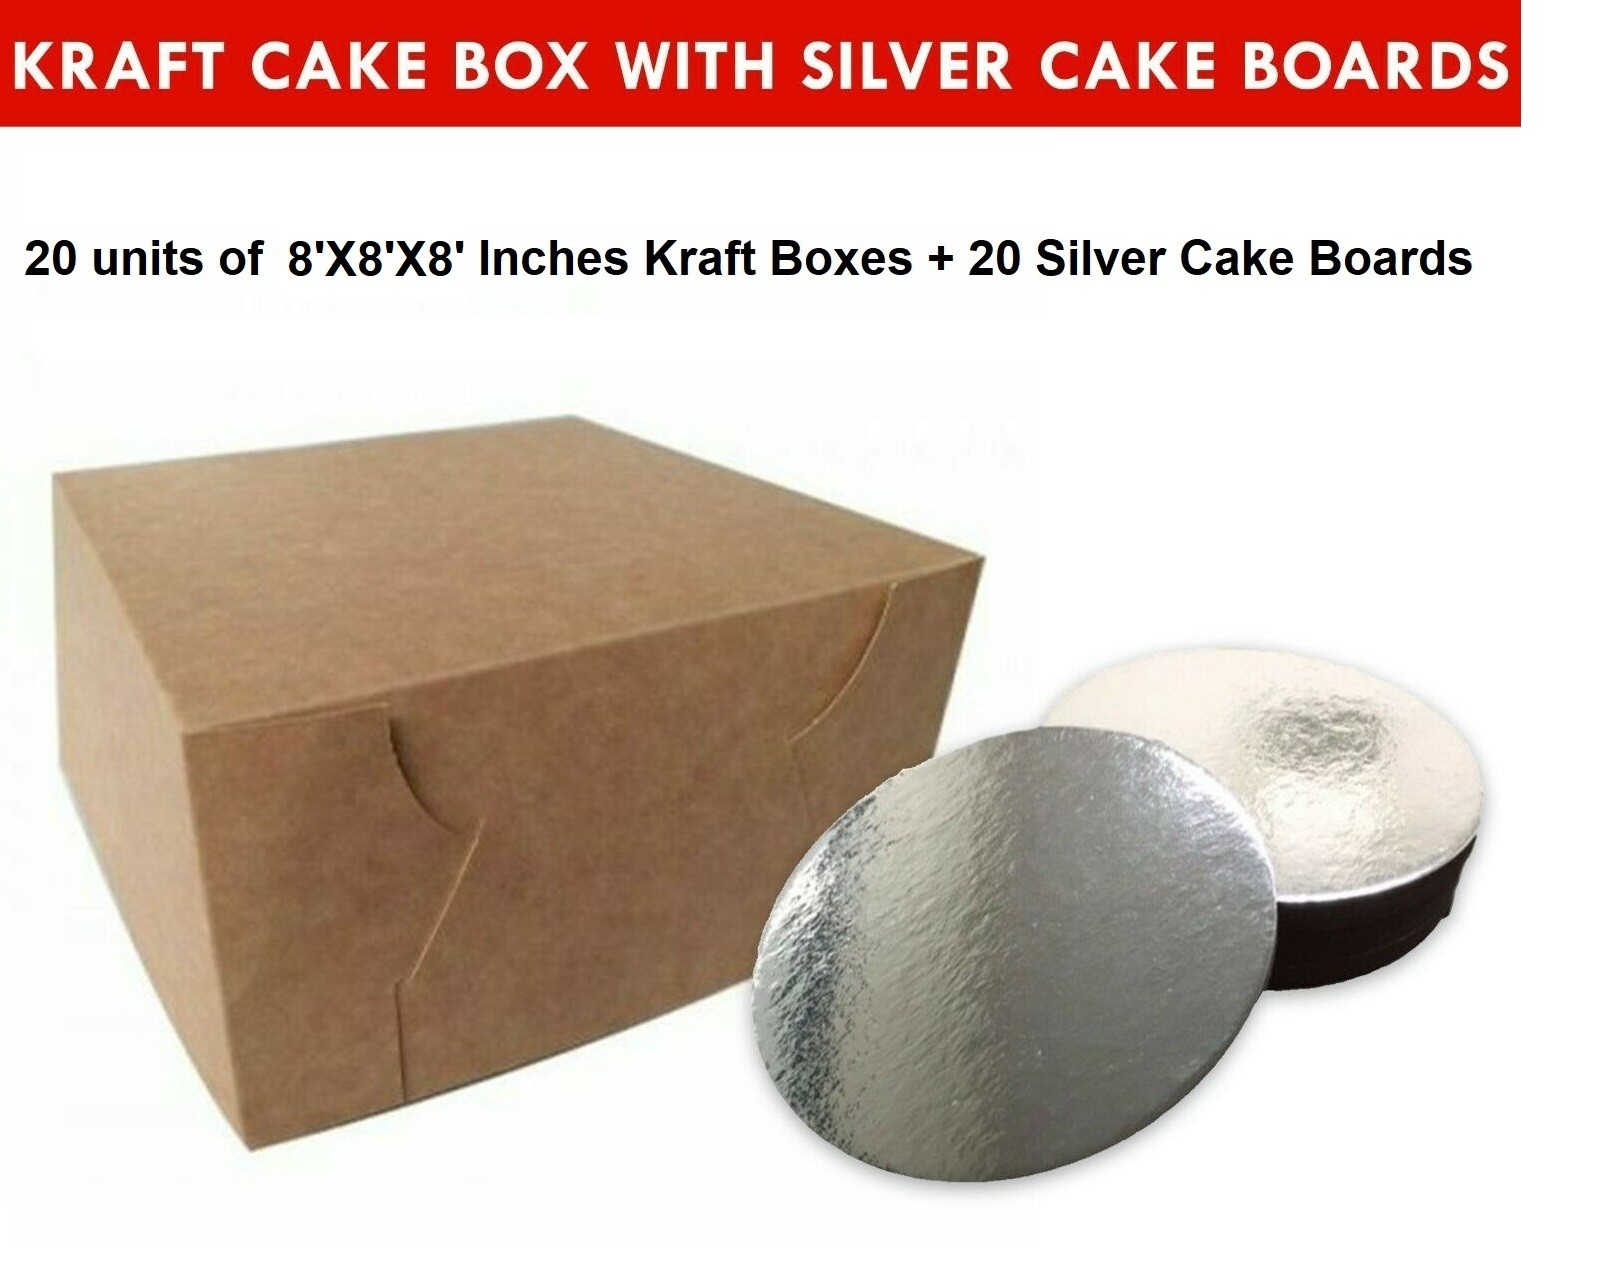 "Kraft Cake Boxes with Round boards - 8"" x 8"" x 4"" ($3.6 /pc x 20 units)"